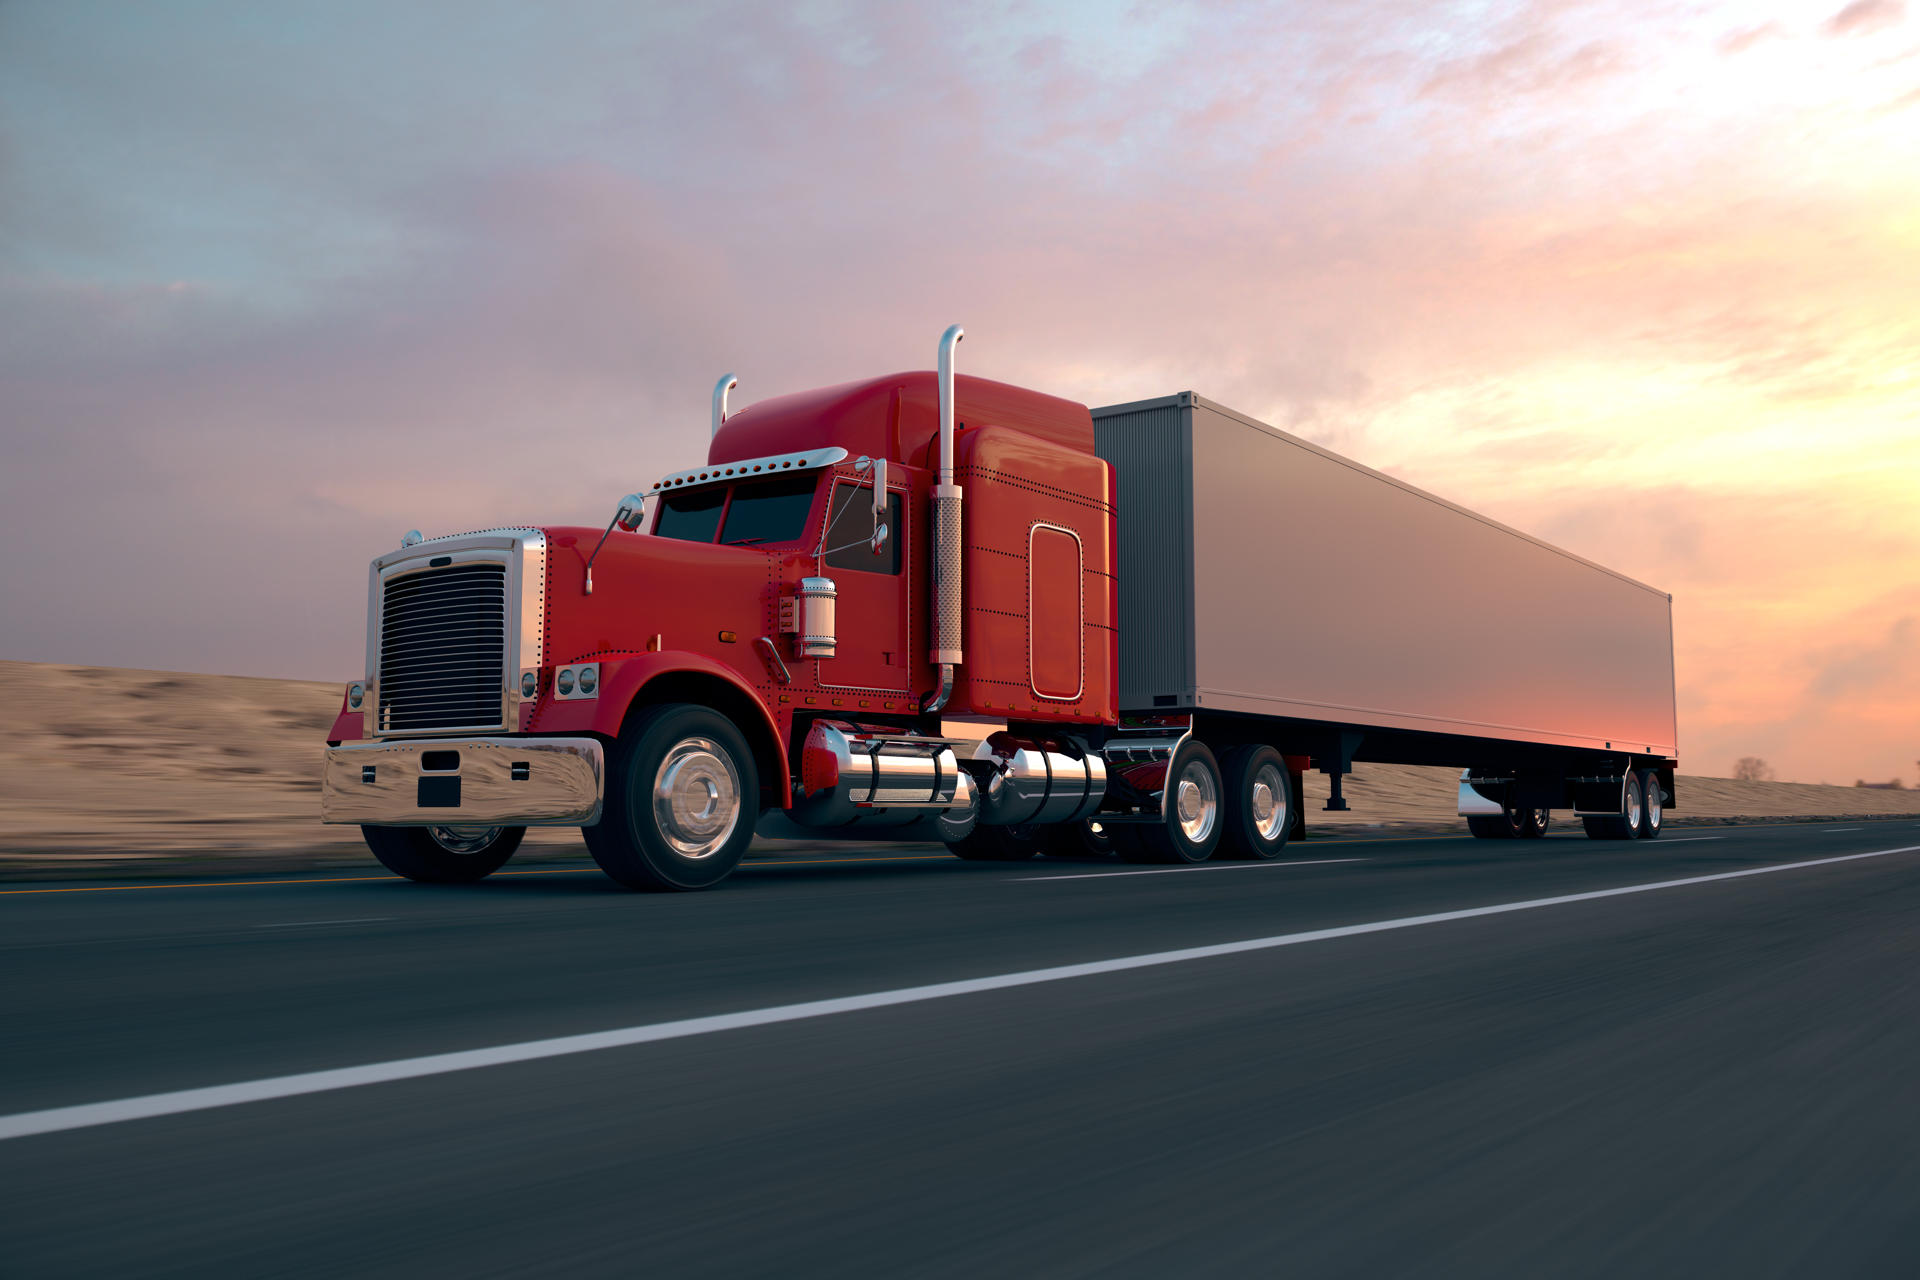 Trucking Road Freight /><div class='extra_thumbnails'><img class=